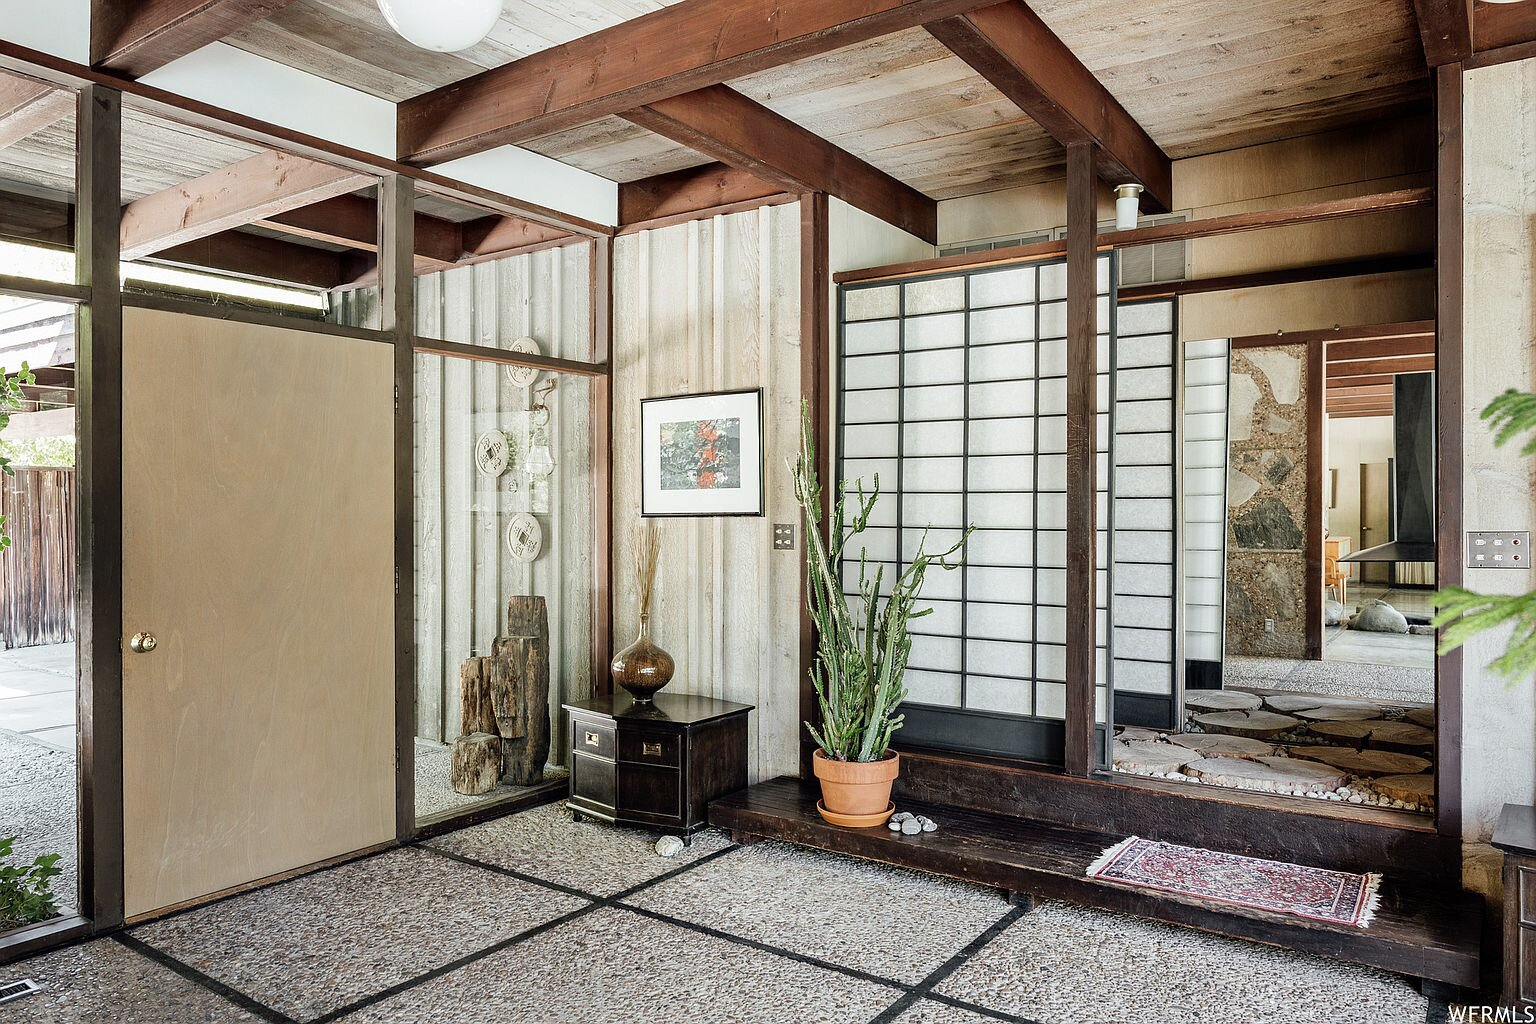 Back in the entryway, a Japanese-style Shoji screen delineates between public and private spaces by separating a hallway that leads to the home's bedrooms.  Photo 7 of 18 in This Tranquil, Japanese-Inspired Midcentury Home Asks $1.2M